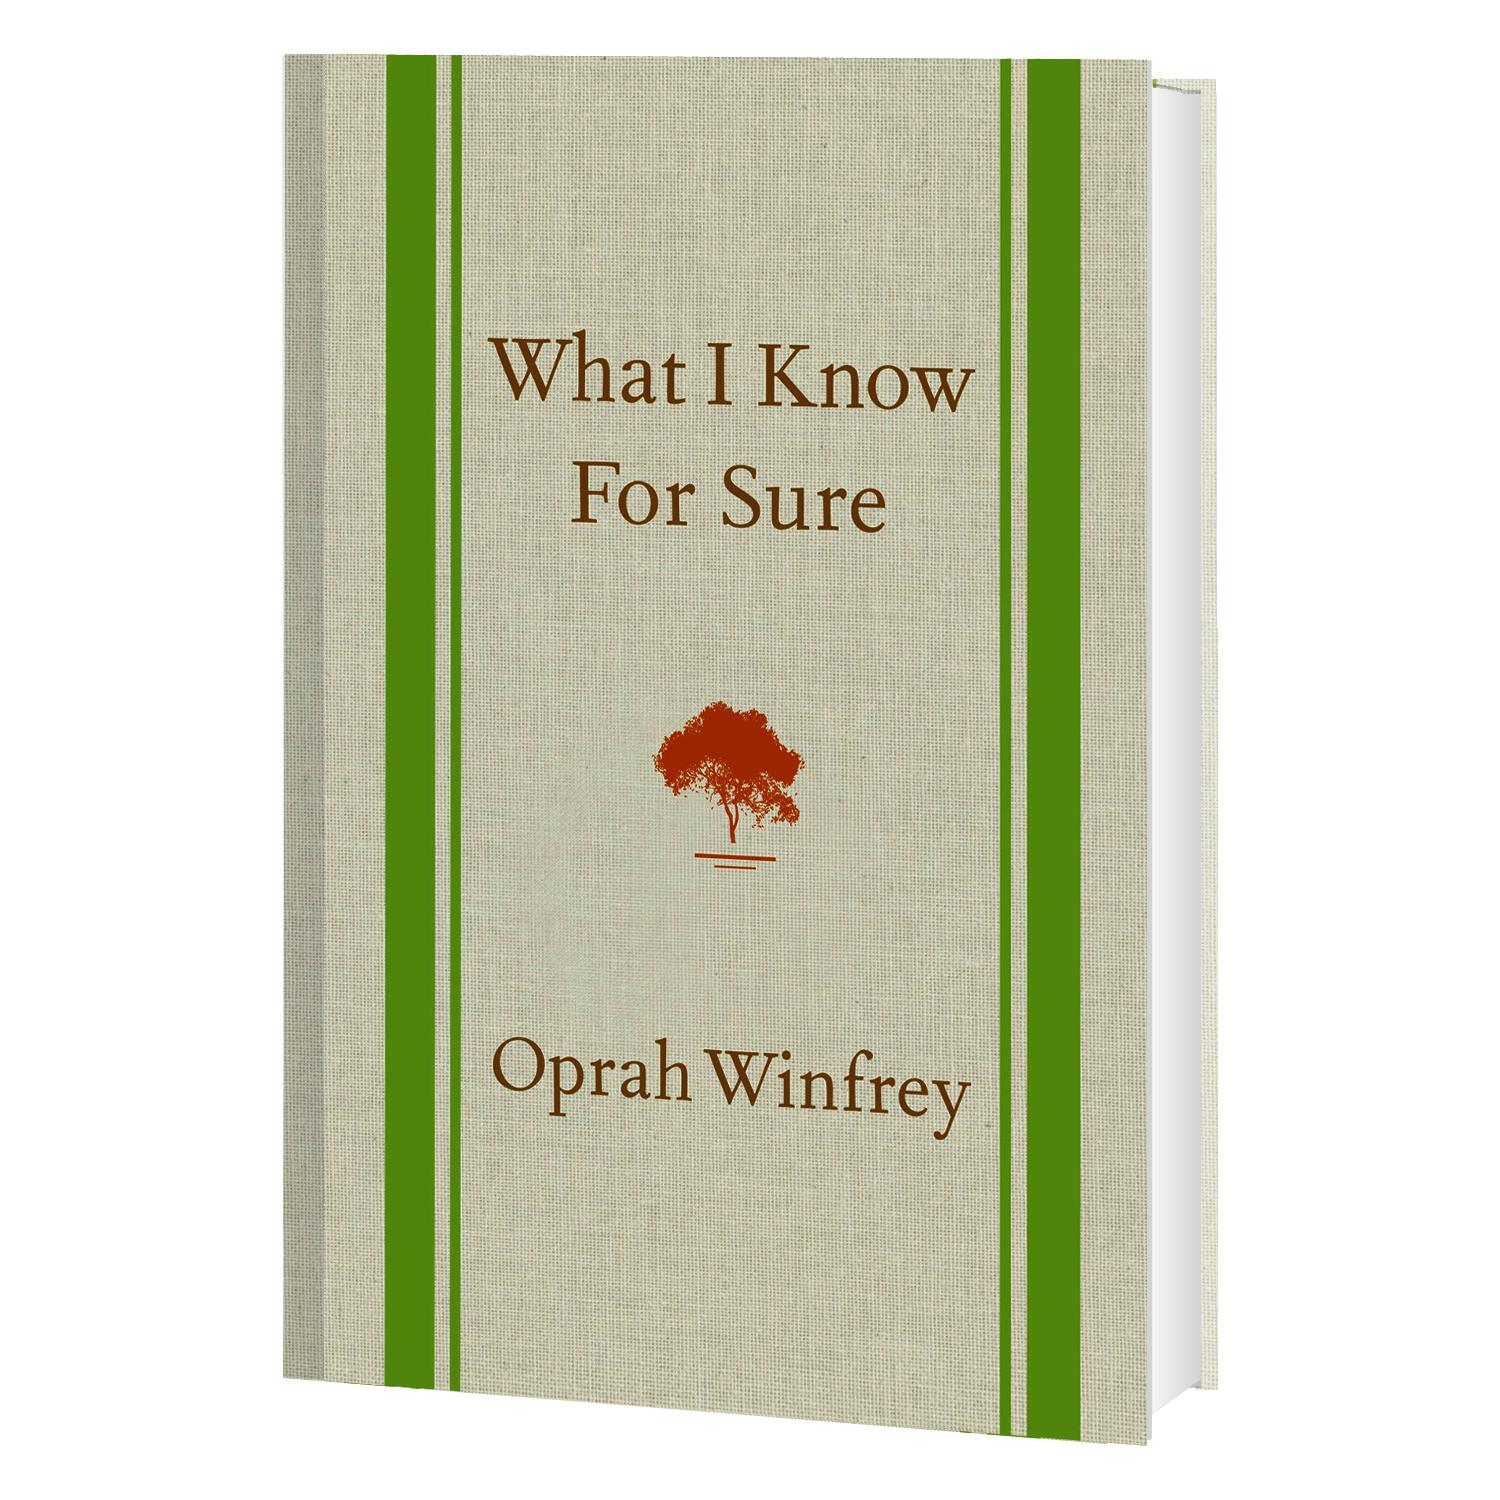 oprah winfrey leadership style term papers  oprah winfrey leadership style essays studymode